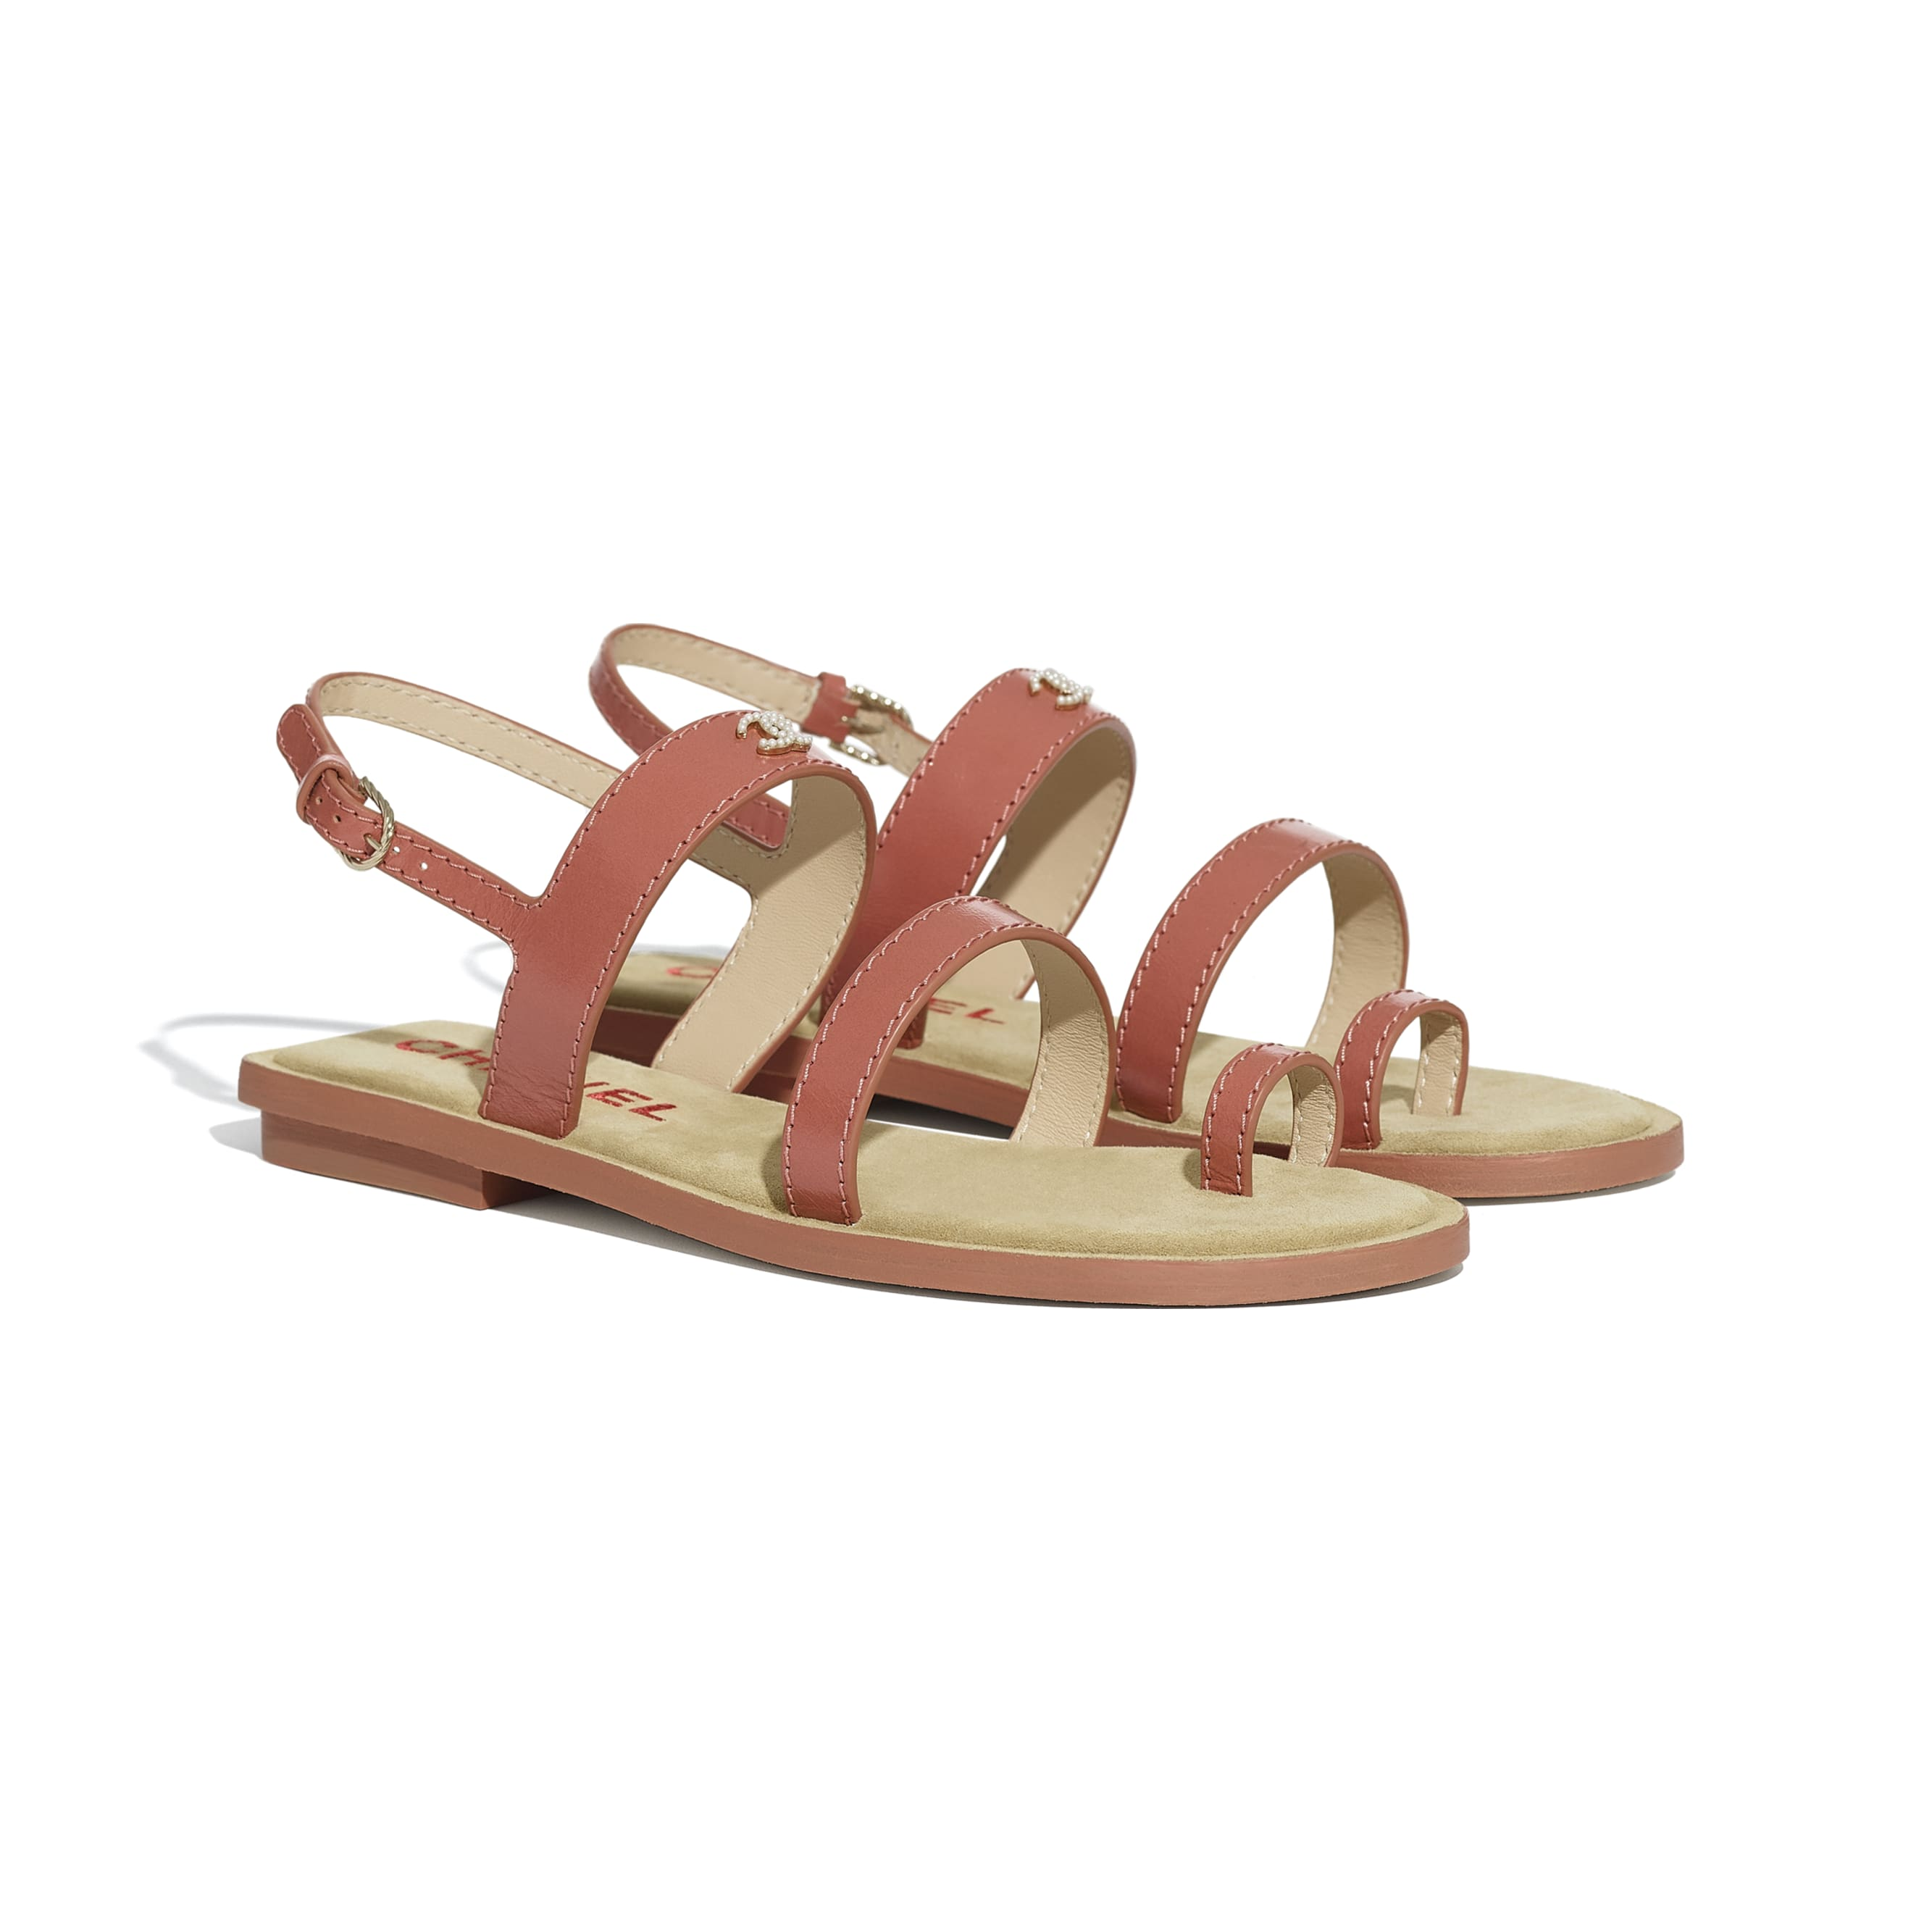 Sandals - Dark Pink - Shiny Calfskin - CHANEL - Alternative view - see standard sized version